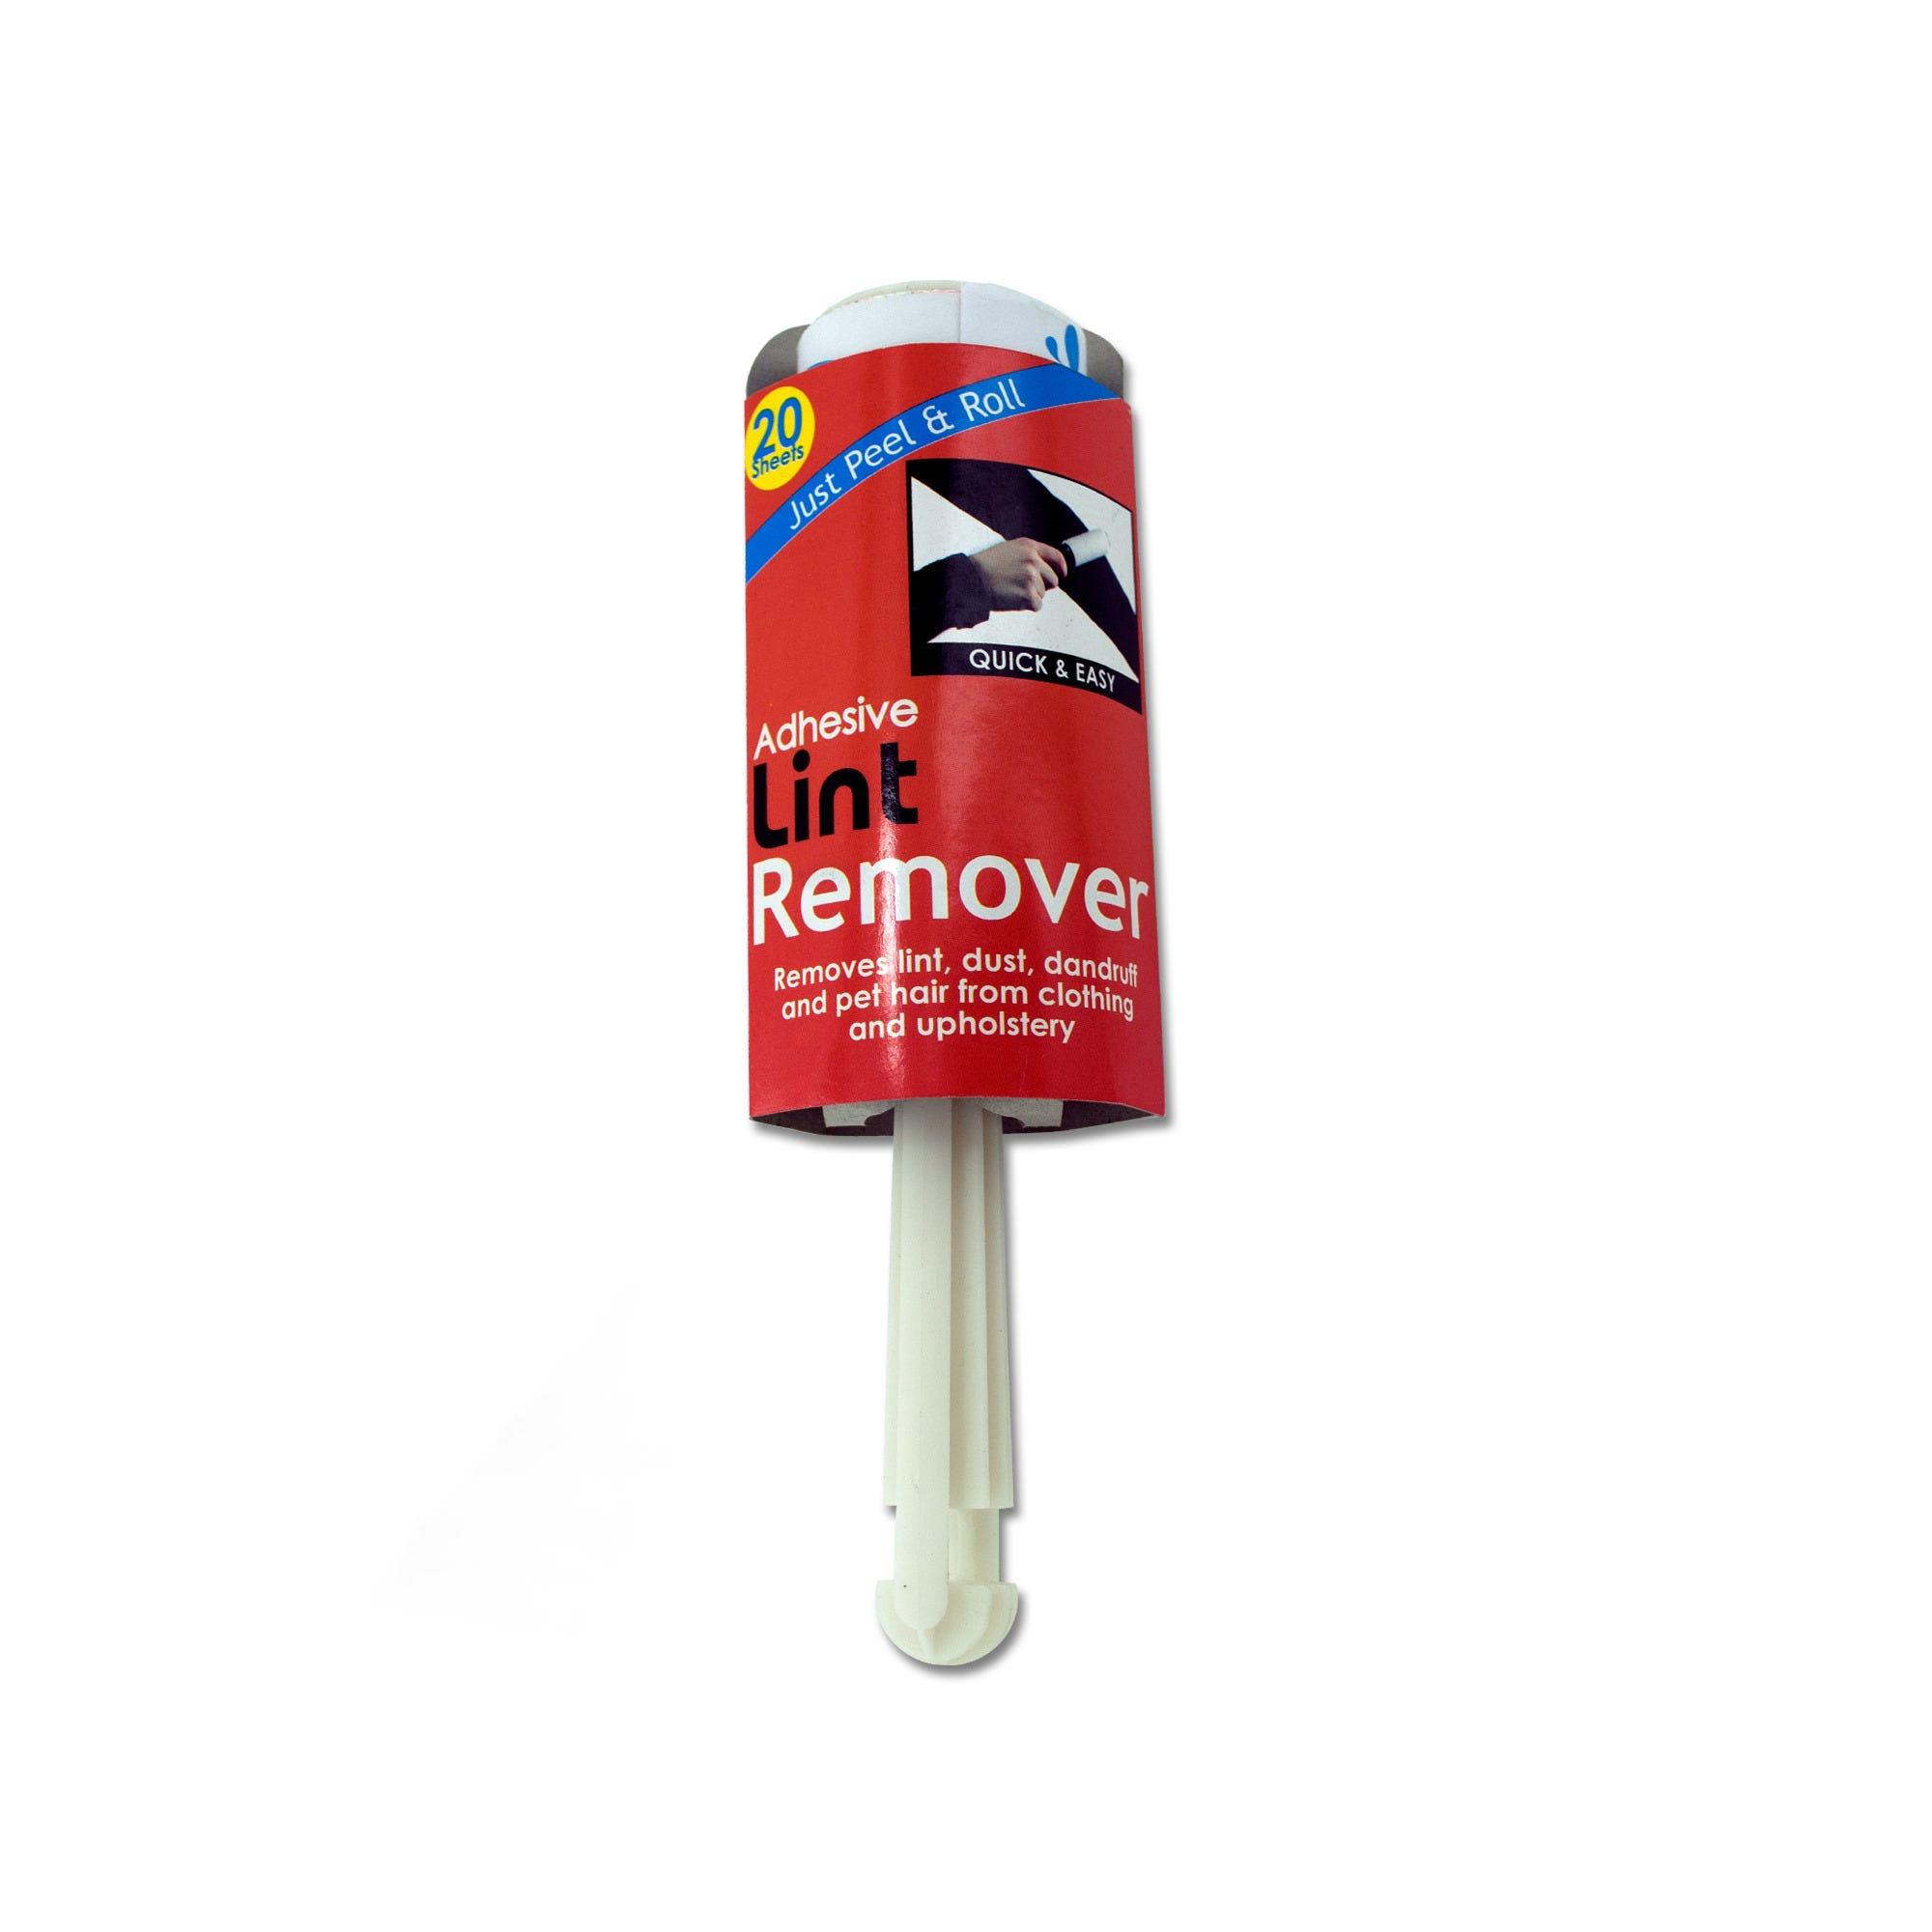 adhesive-lint-remover